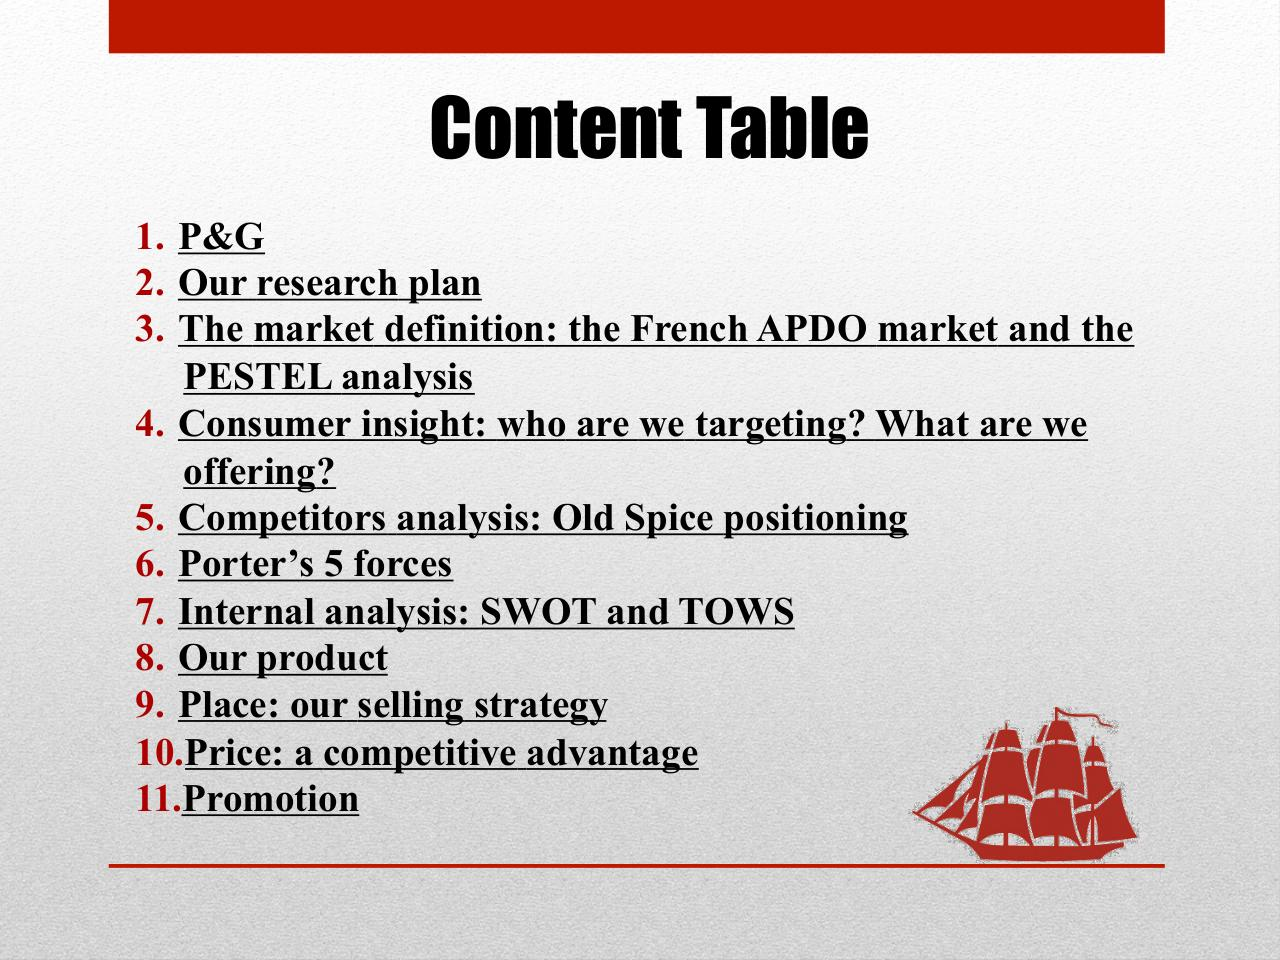 p&g porters five forces analysis